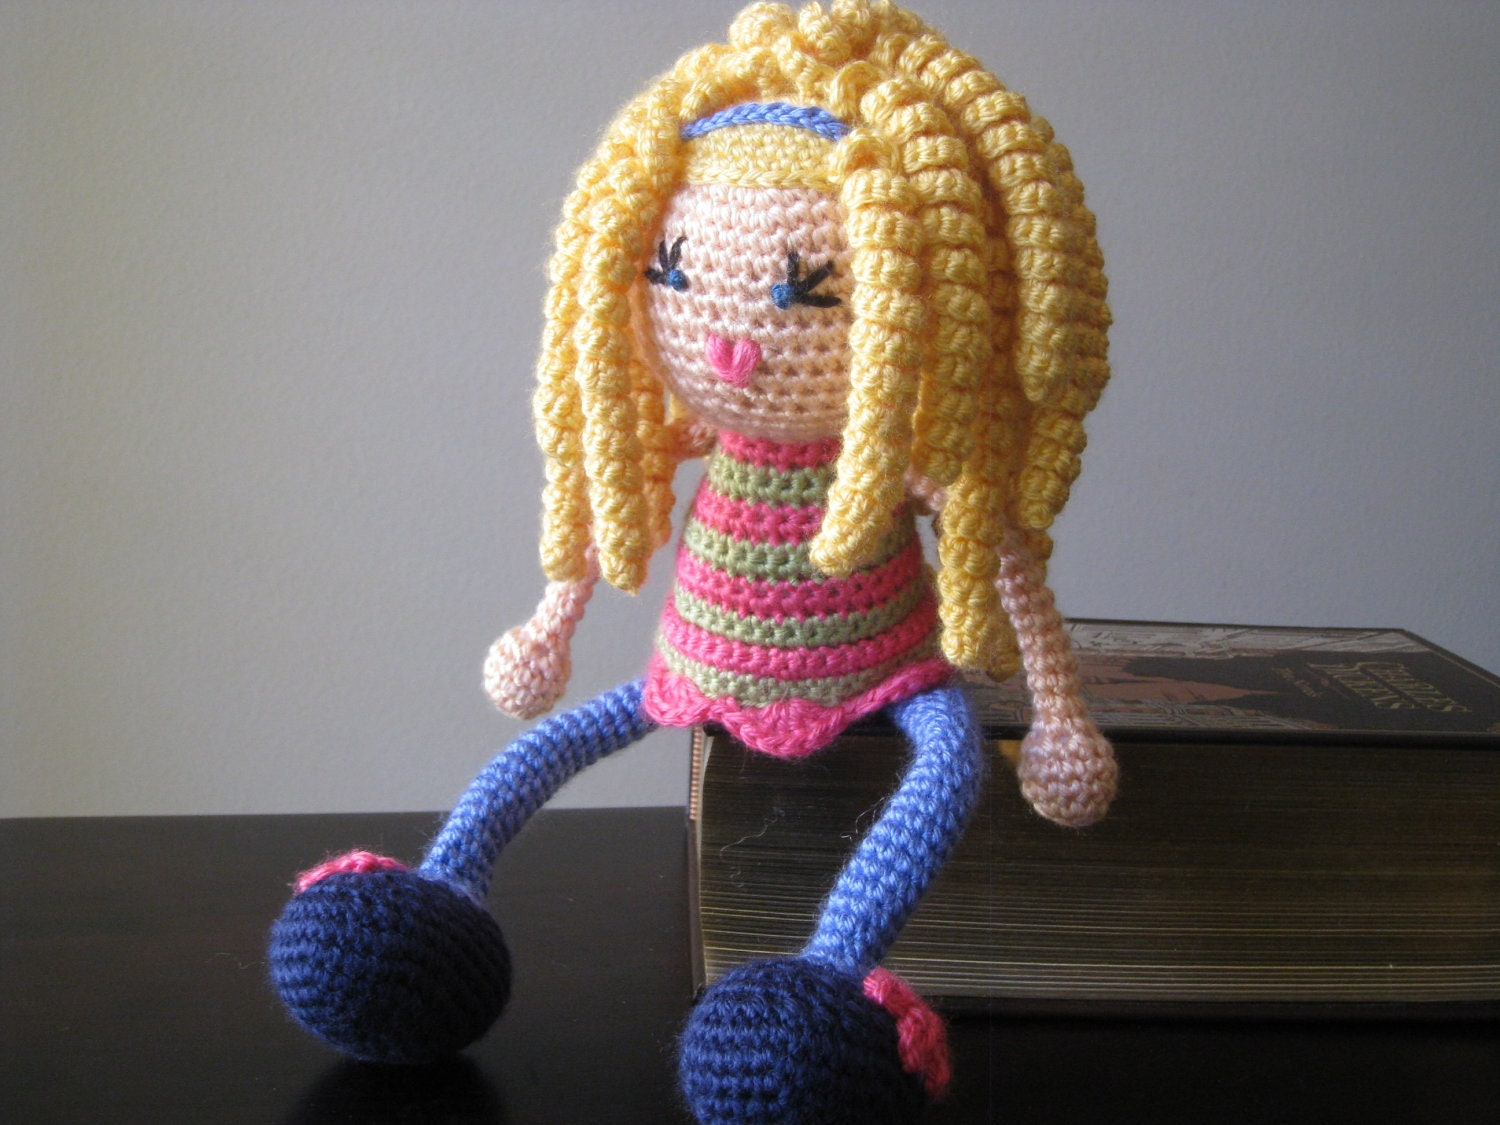 Crochet Hair Doll : CROCHET PATTERN Blond Curly Haired Doll Plush by LeenGreenBean